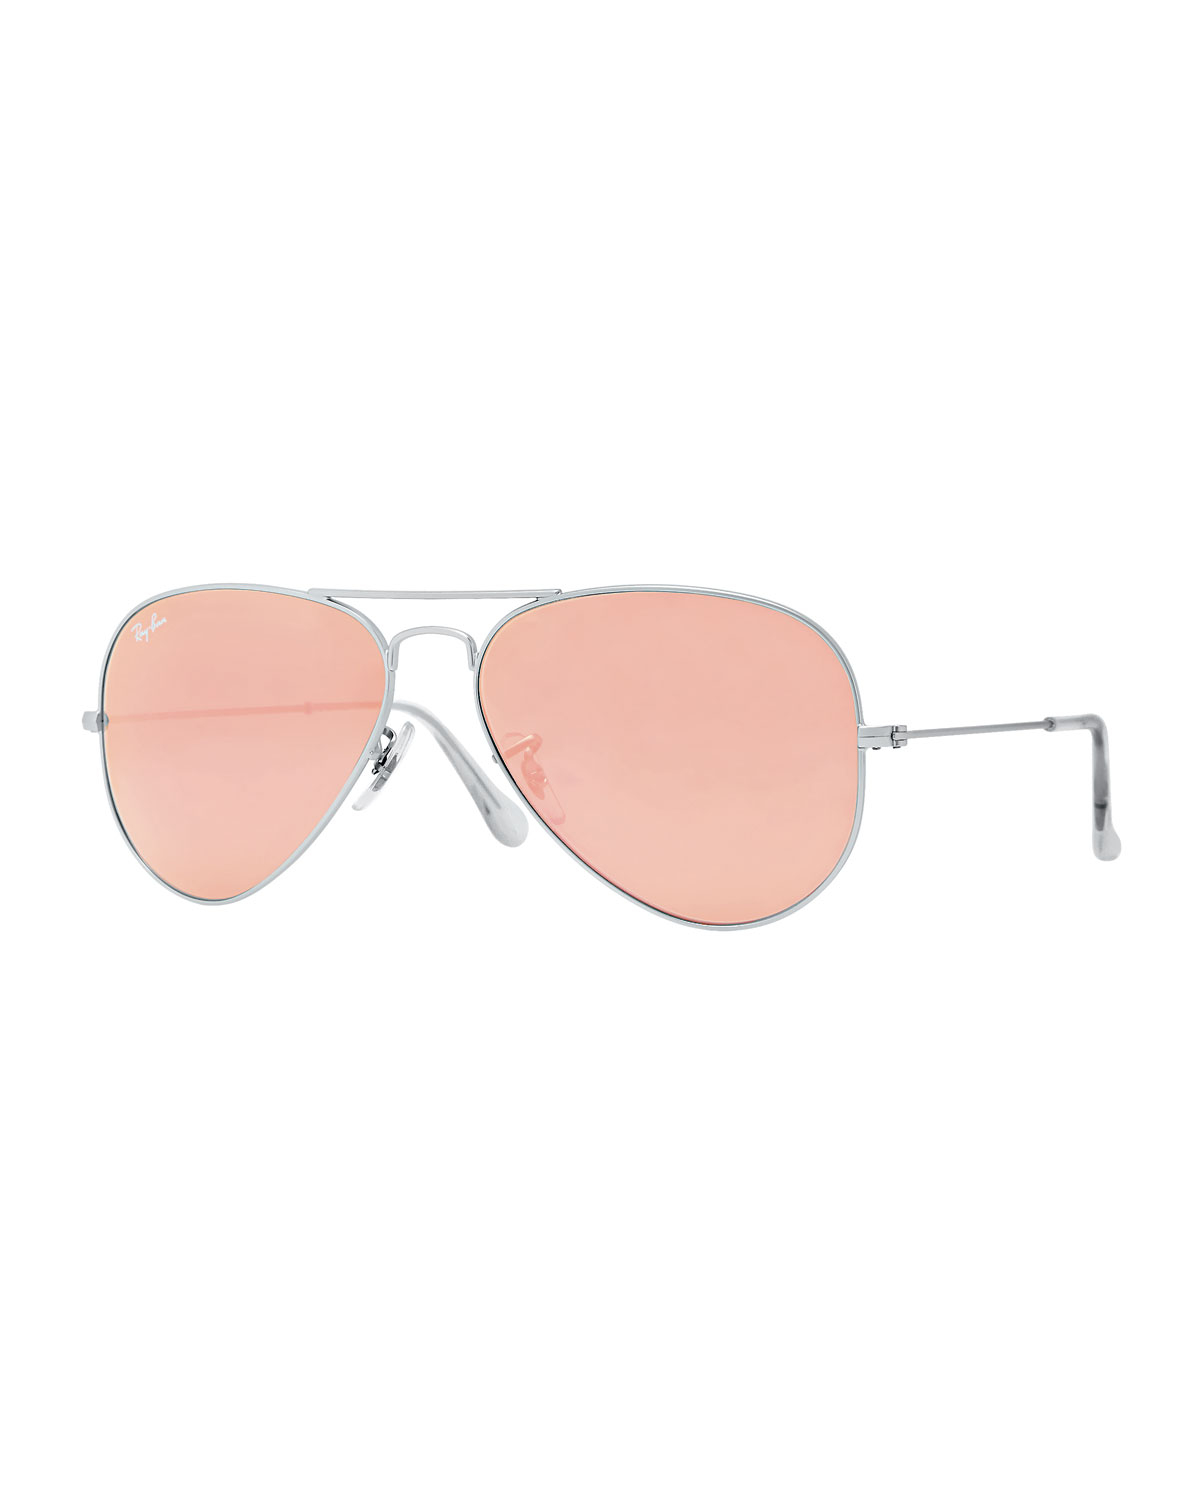 Ray ban aviator mirrored sunglasses in brown for men lyst for Mirror sunglasses